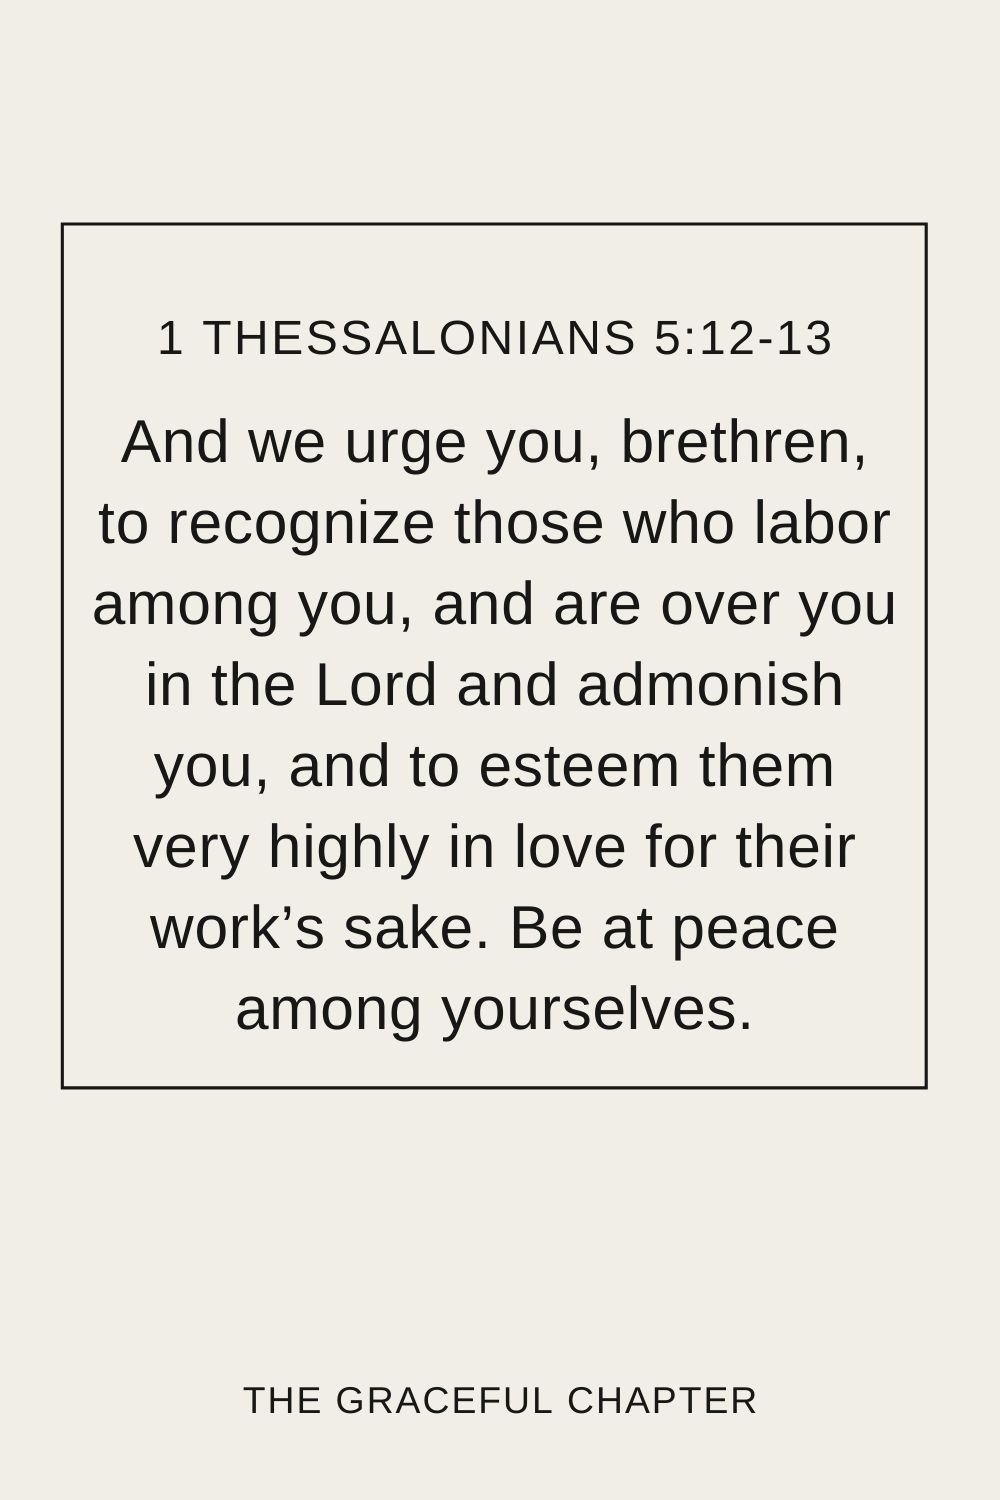 And we urge you, brethren, to recognize those who labor among you, and are over you in the Lord and admonish you, and to esteem them very highly in love for their work's sake. Be at peace among yourselves. 1 Thessalonians 5:12-13